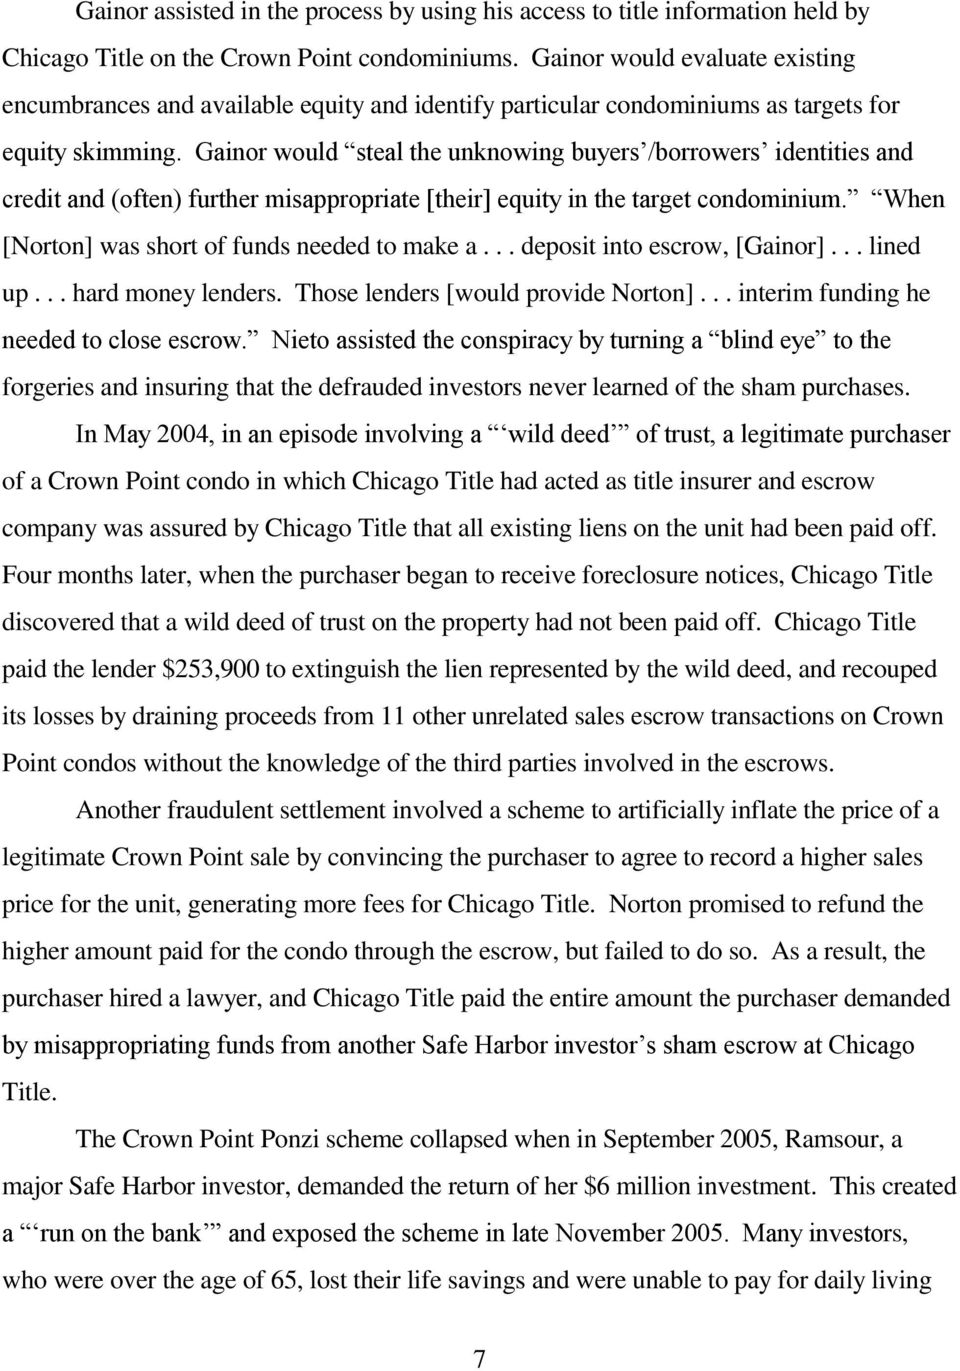 Gainor would steal the unknowing buyers /borrowers identities and credit and (often) further misappropriate [their] equity in the target condominium. When [Norton] was short of funds needed to make a.